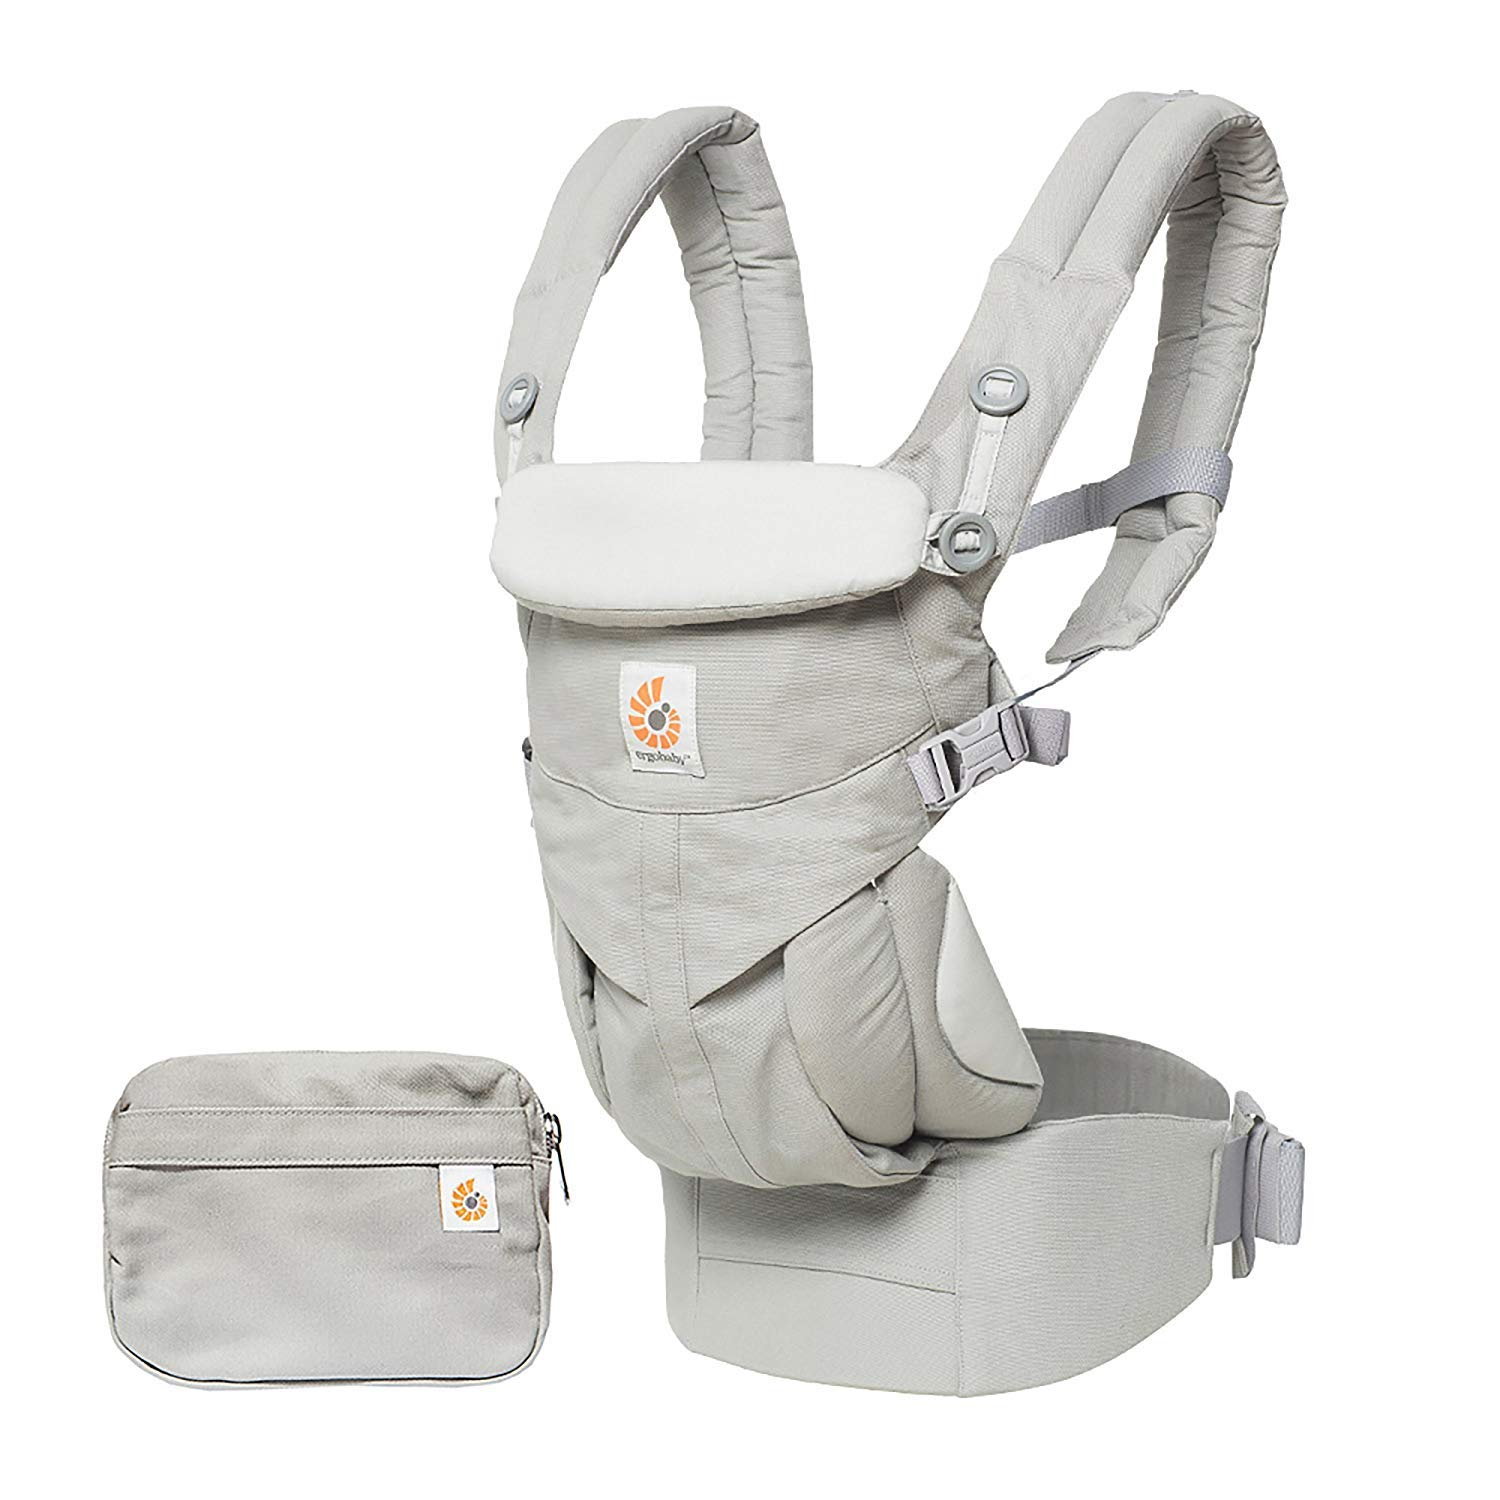 Ergobaby Carrier, Omni 360 All Carry Positions Baby Carrier, Pearl Grey by Ergobaby (Image #4)